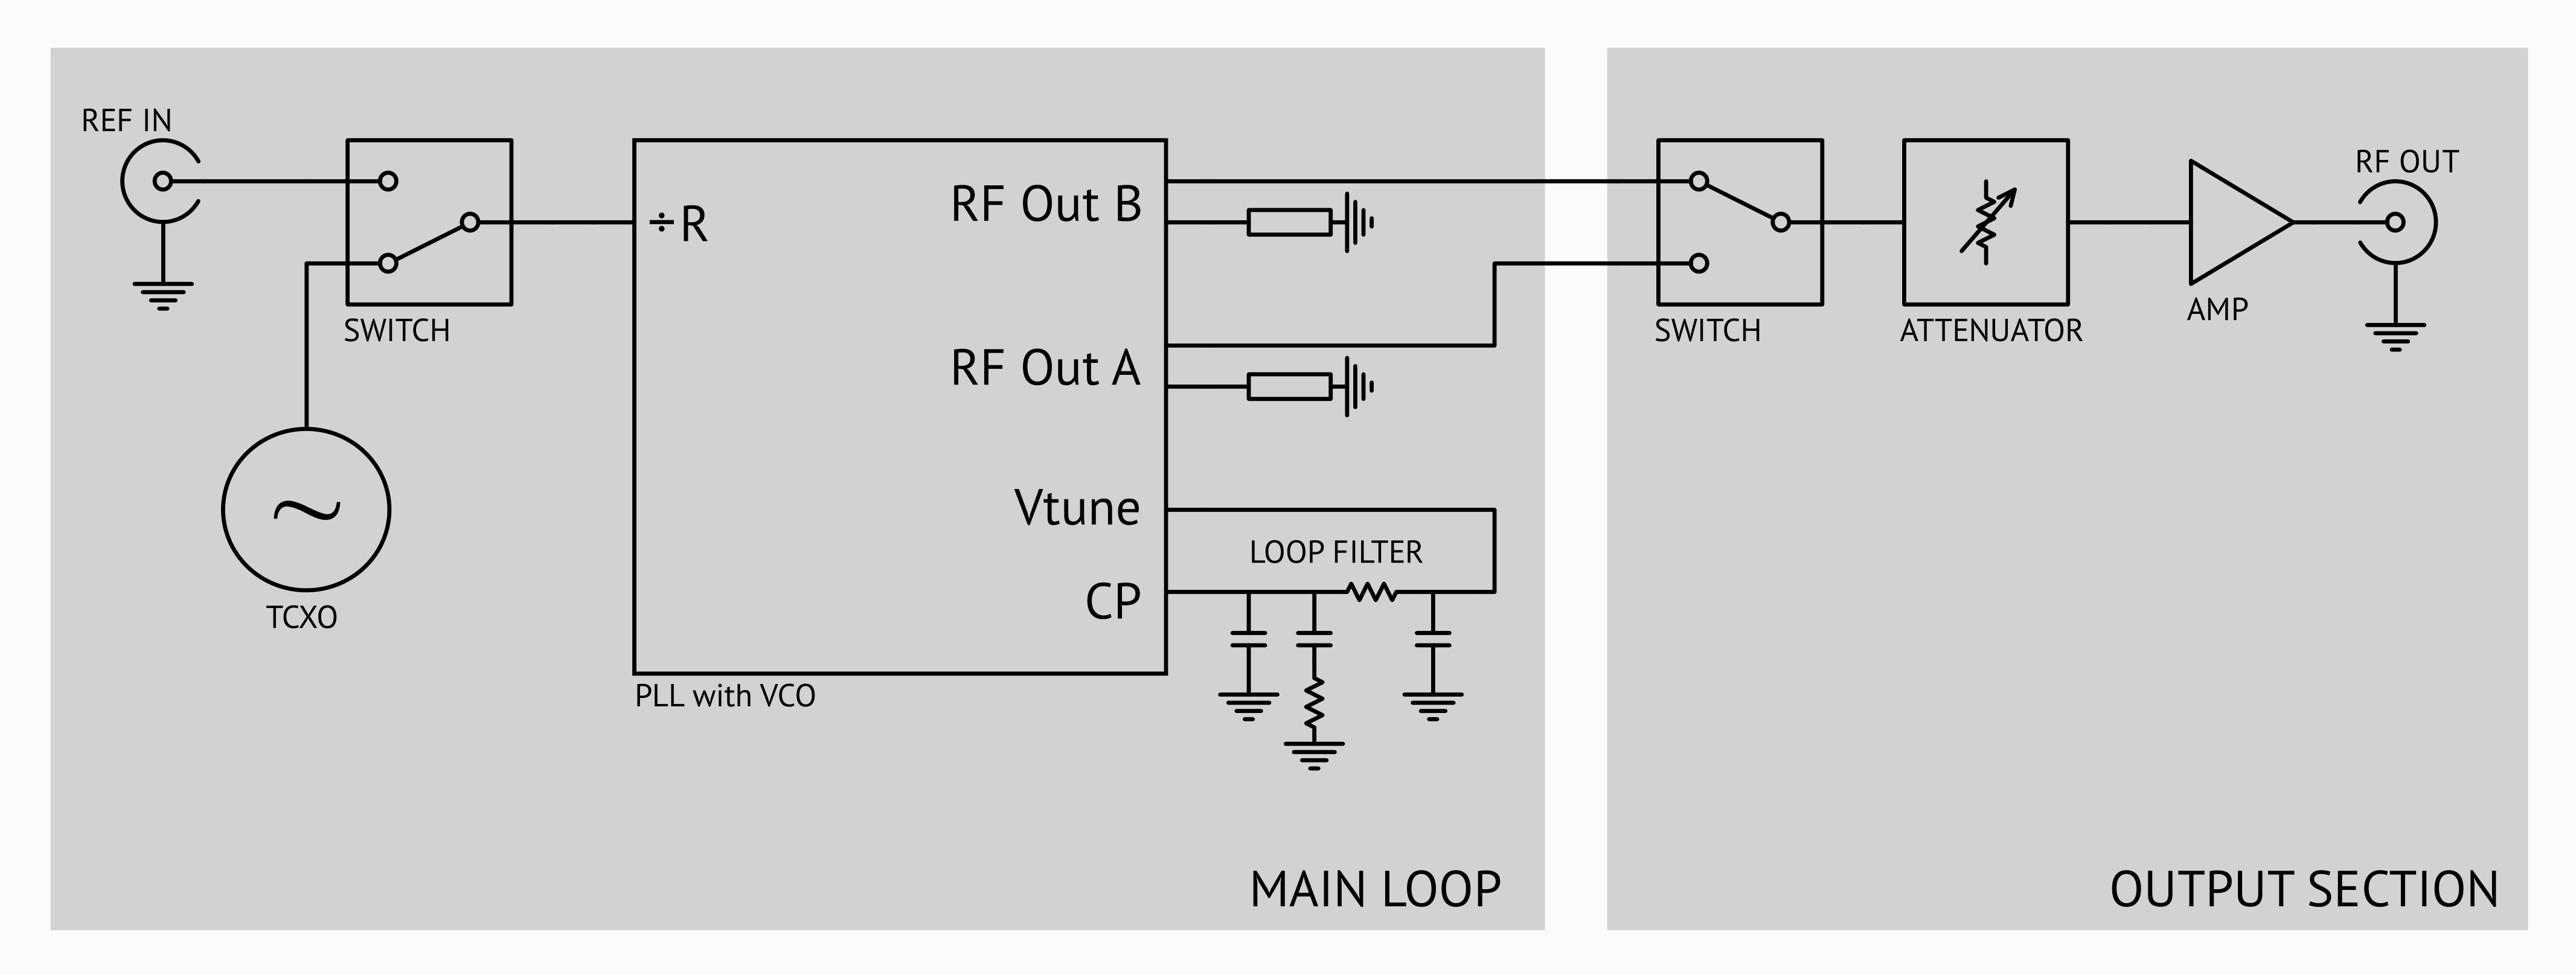 Erasynth Crowd Supply Pulse Generator Circuit Shown In The Schematic Diagram Below Produces Competitor Block